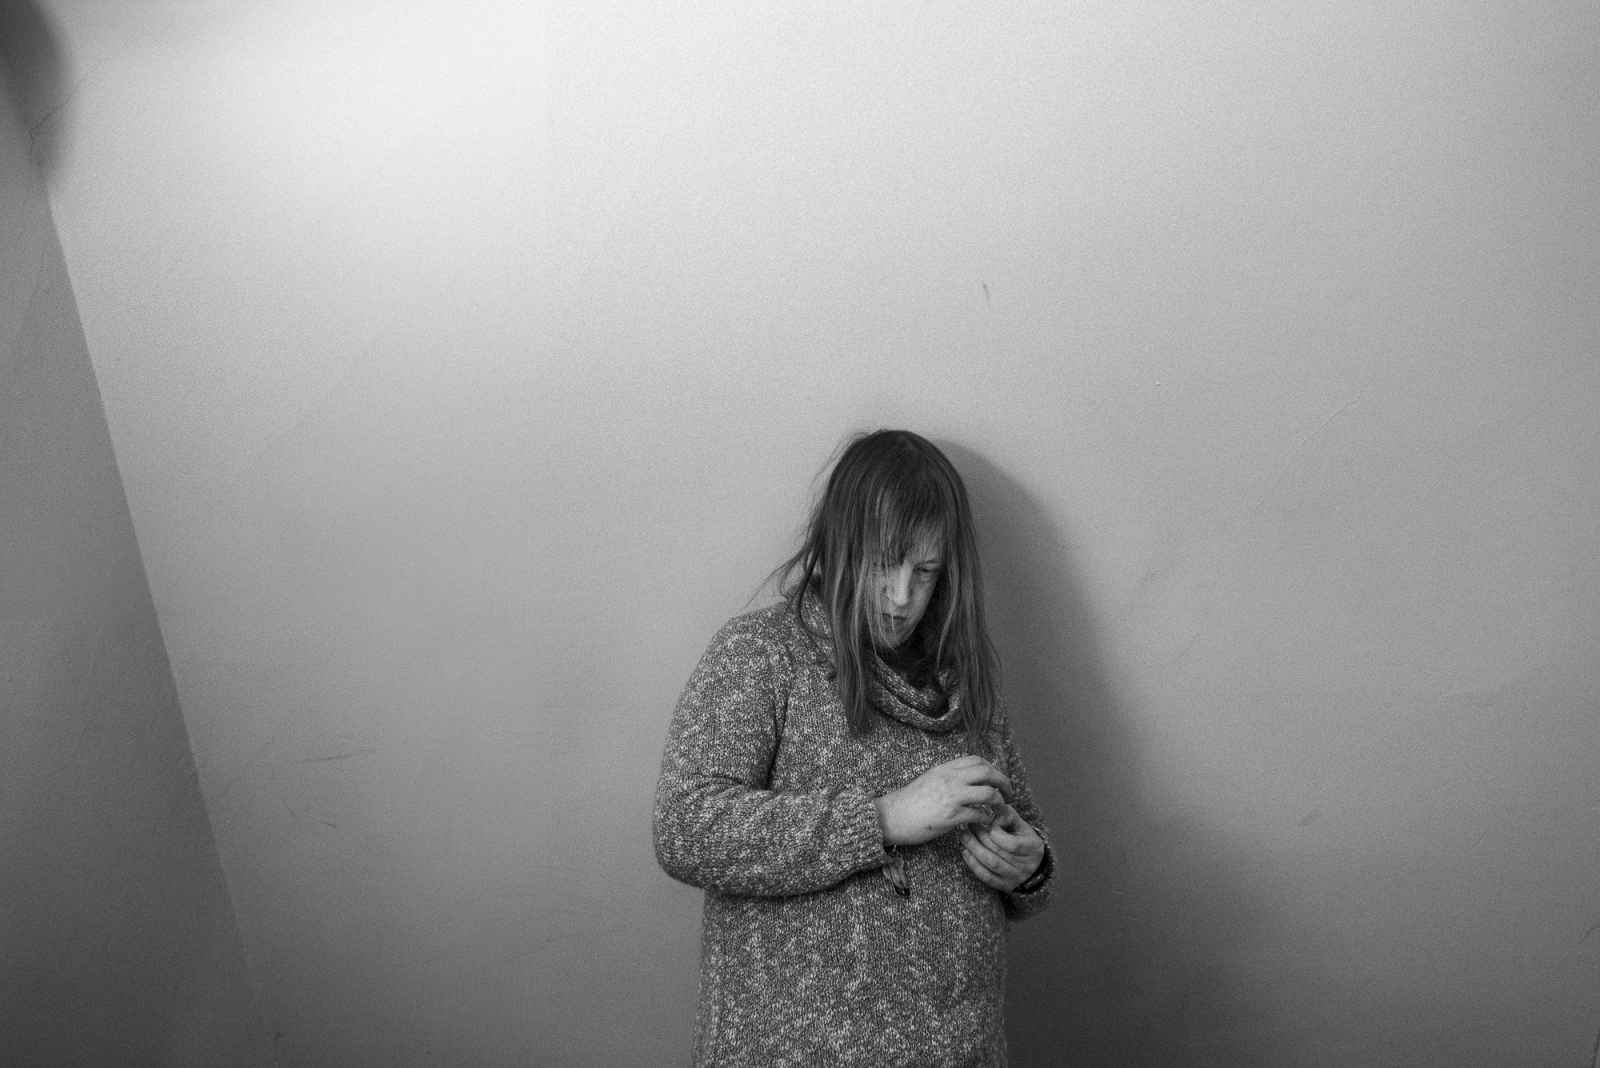 Michelle pauses by the bedroom wall in Philadelphia the night before Jennifer's operation in East Philadelphia, Jan. 10, 2017. Michelle worries she won't be able to support and comfort Jennifer enough after her operation.